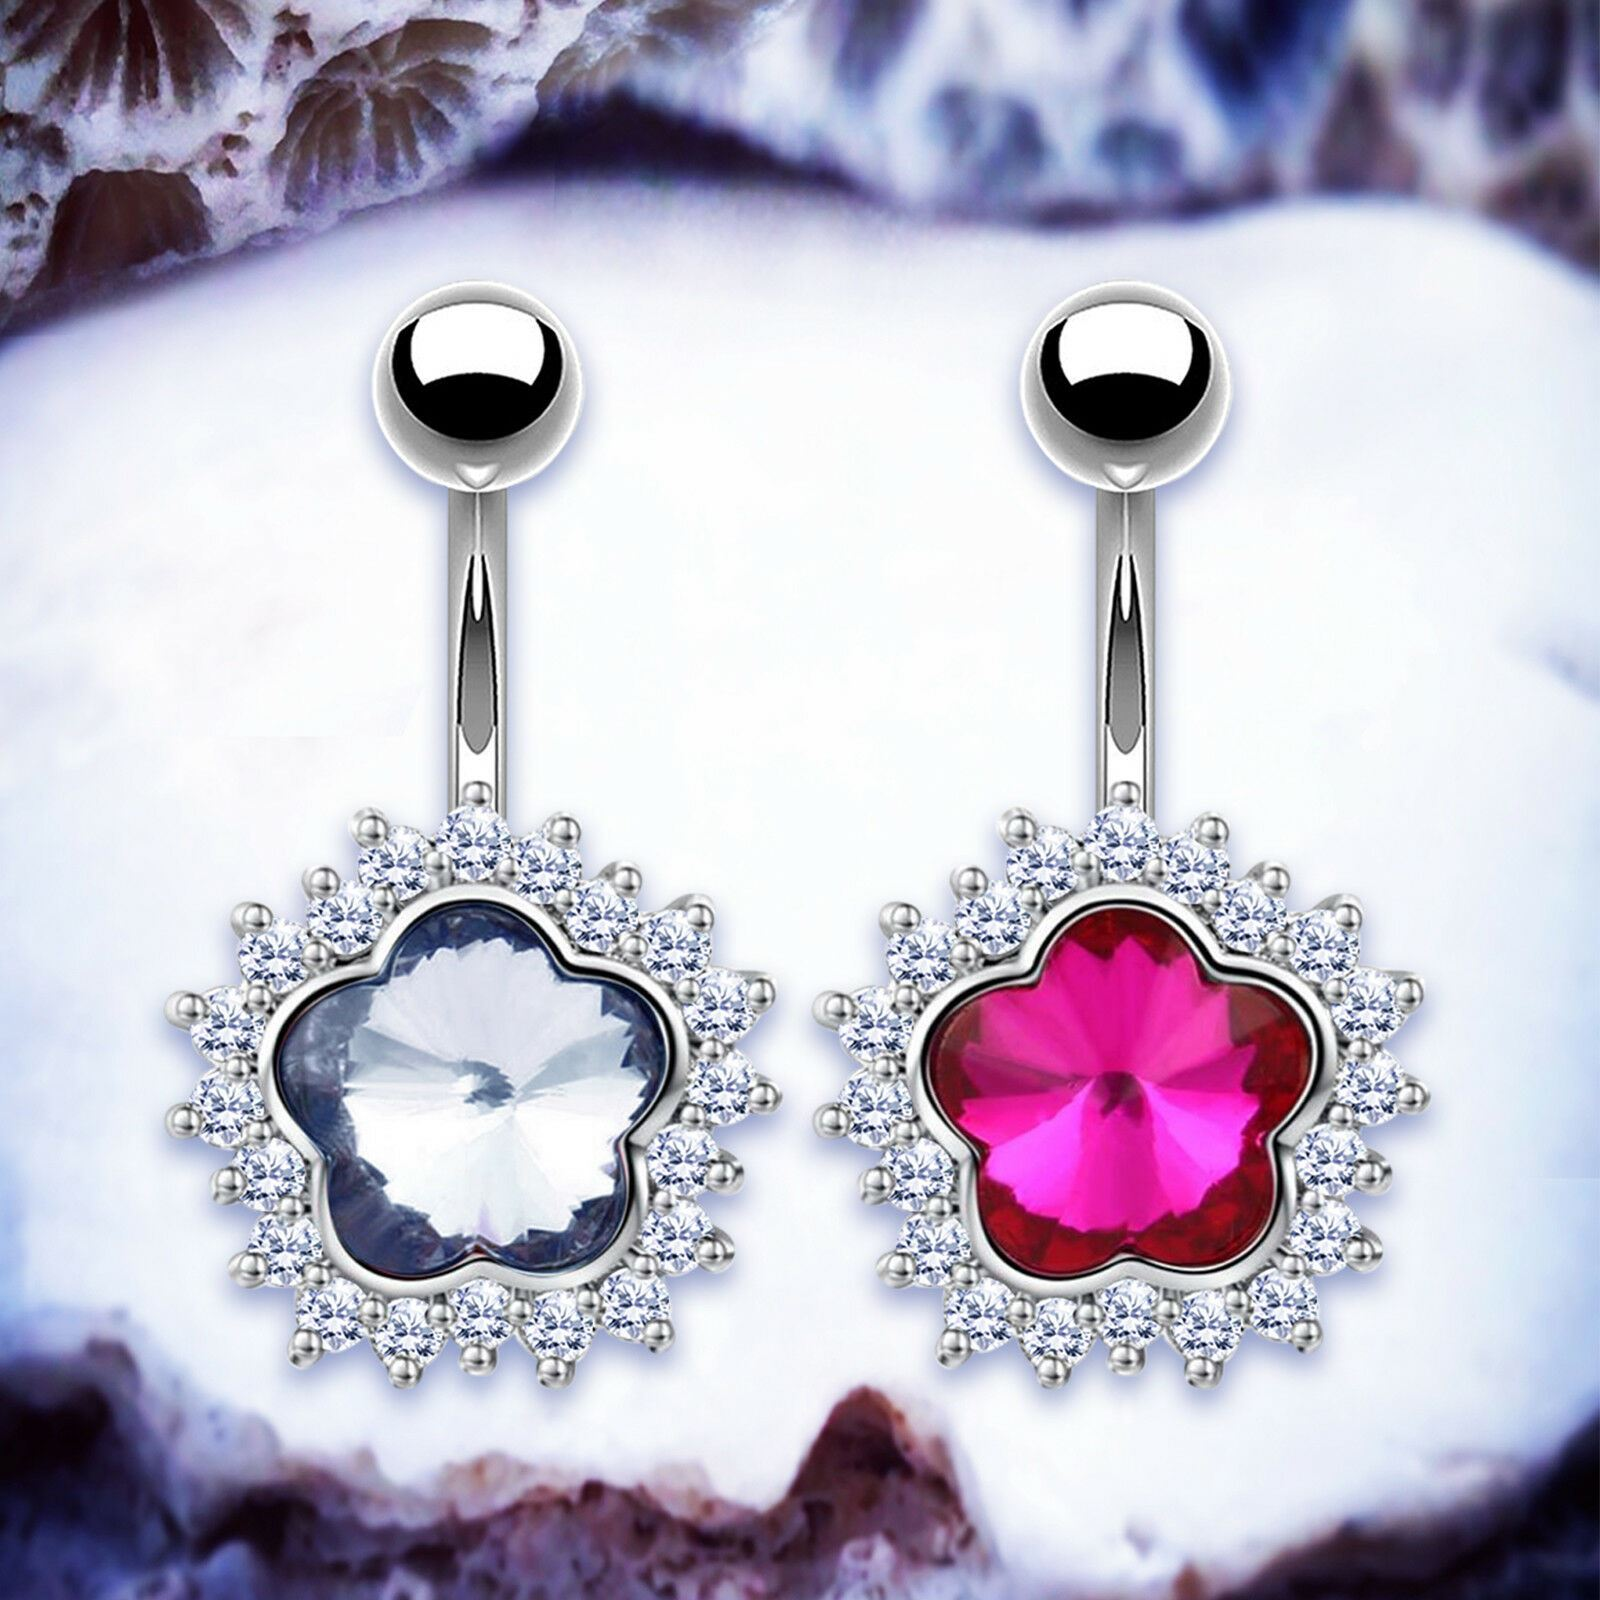 Details About Beau Gem Pink Belly Bar Silver Navel Piercing Belly Button Bars Piercing Rings